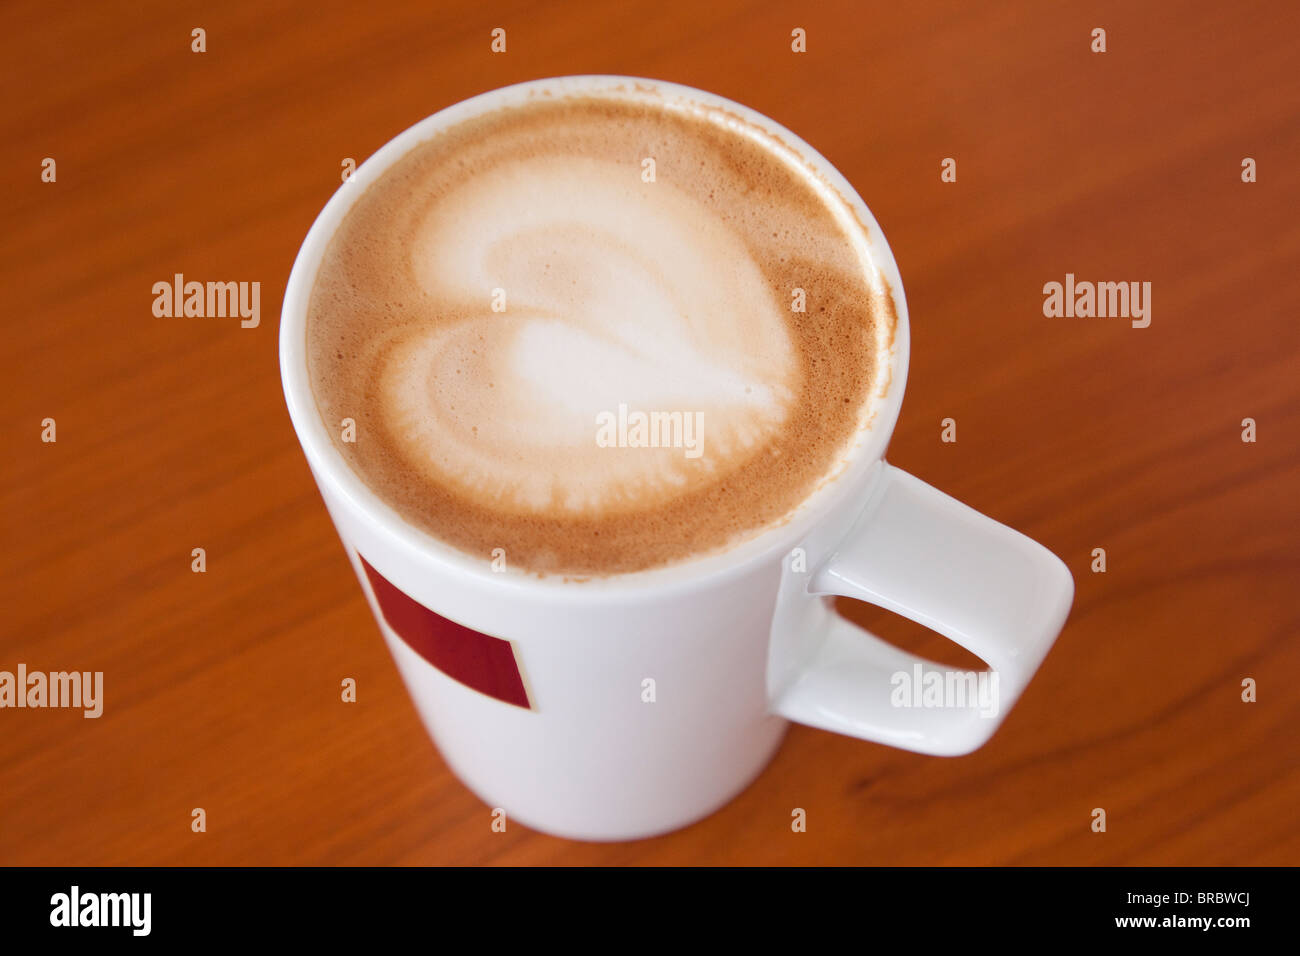 Mug cup of cafe Latte coffee with a heart shape in the froth on top of a brown wooden table from above. England, - Stock Image